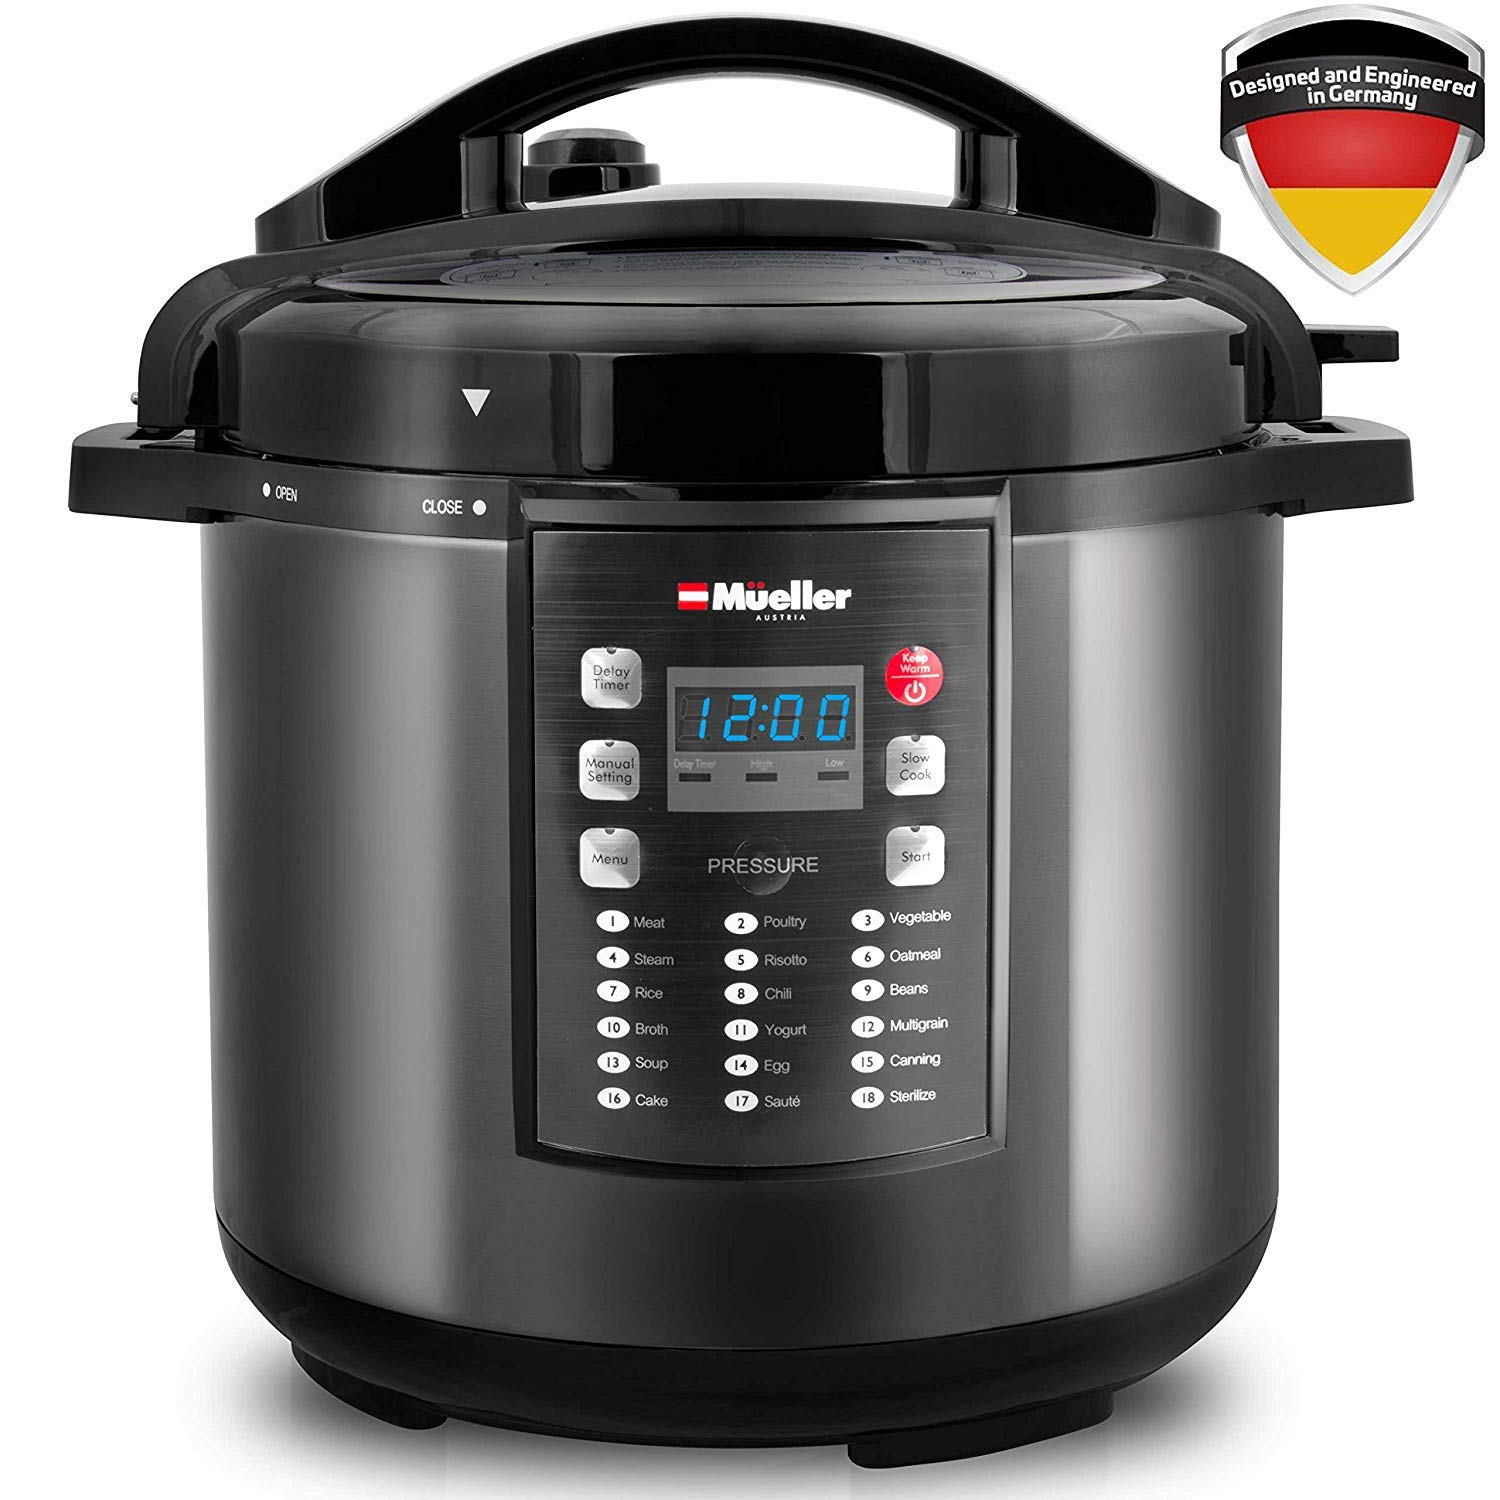 MUELLER Pressure Cooker Instant Crock 10-in-1 Pot Pro Series 19 Program 6Q with German ThermaV Tech, Cook 2 Dishes at Once, BONUS TEMPERED GLASS LID, Saute, Steamer, Slow, Rice, Yogurt, Sterilizer (Graphite)